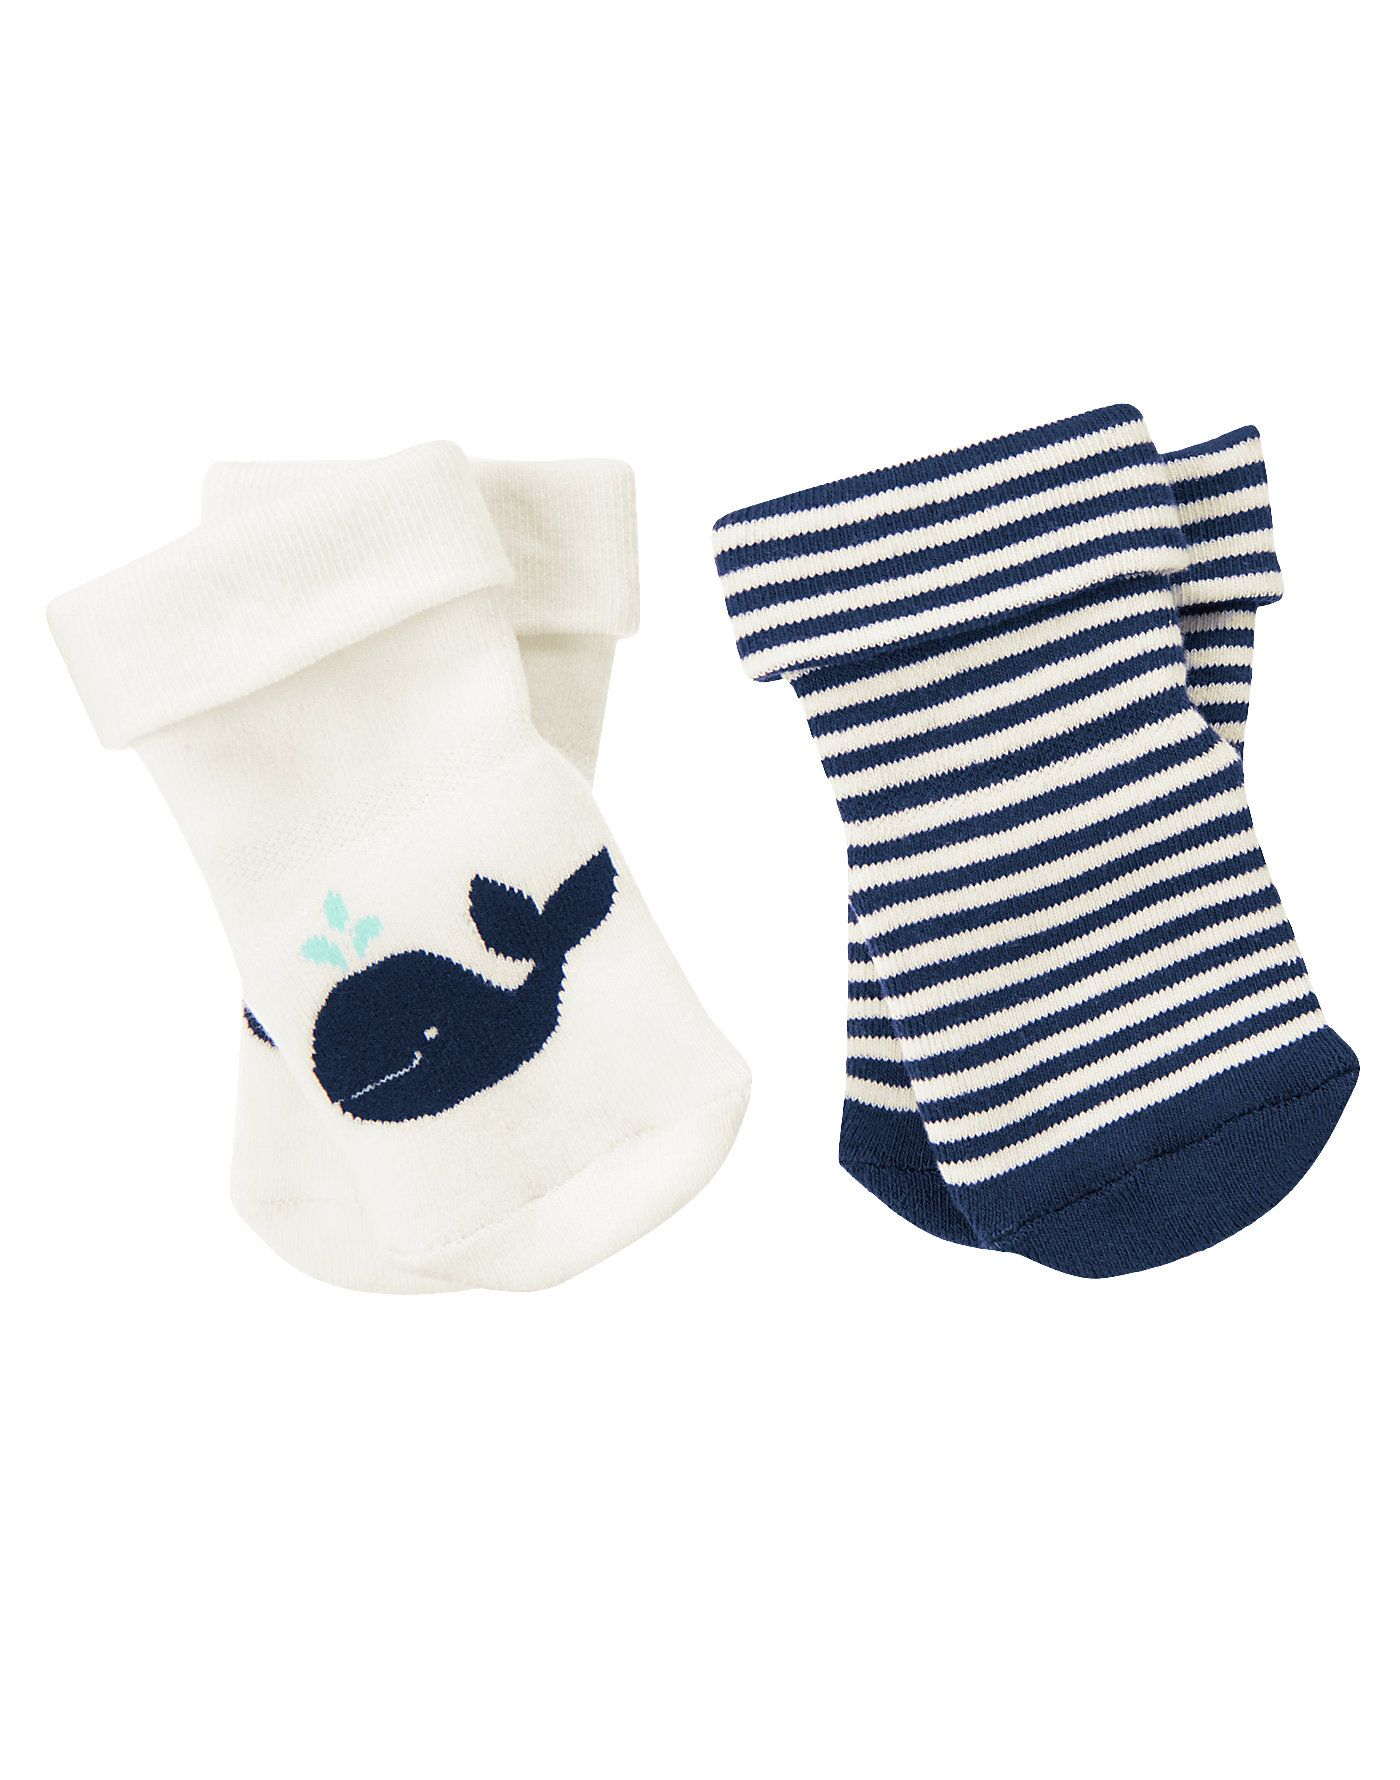 Whale Socks Two Pack Newborn Accessories Baby Boy Shoes Newborn Baby Photos